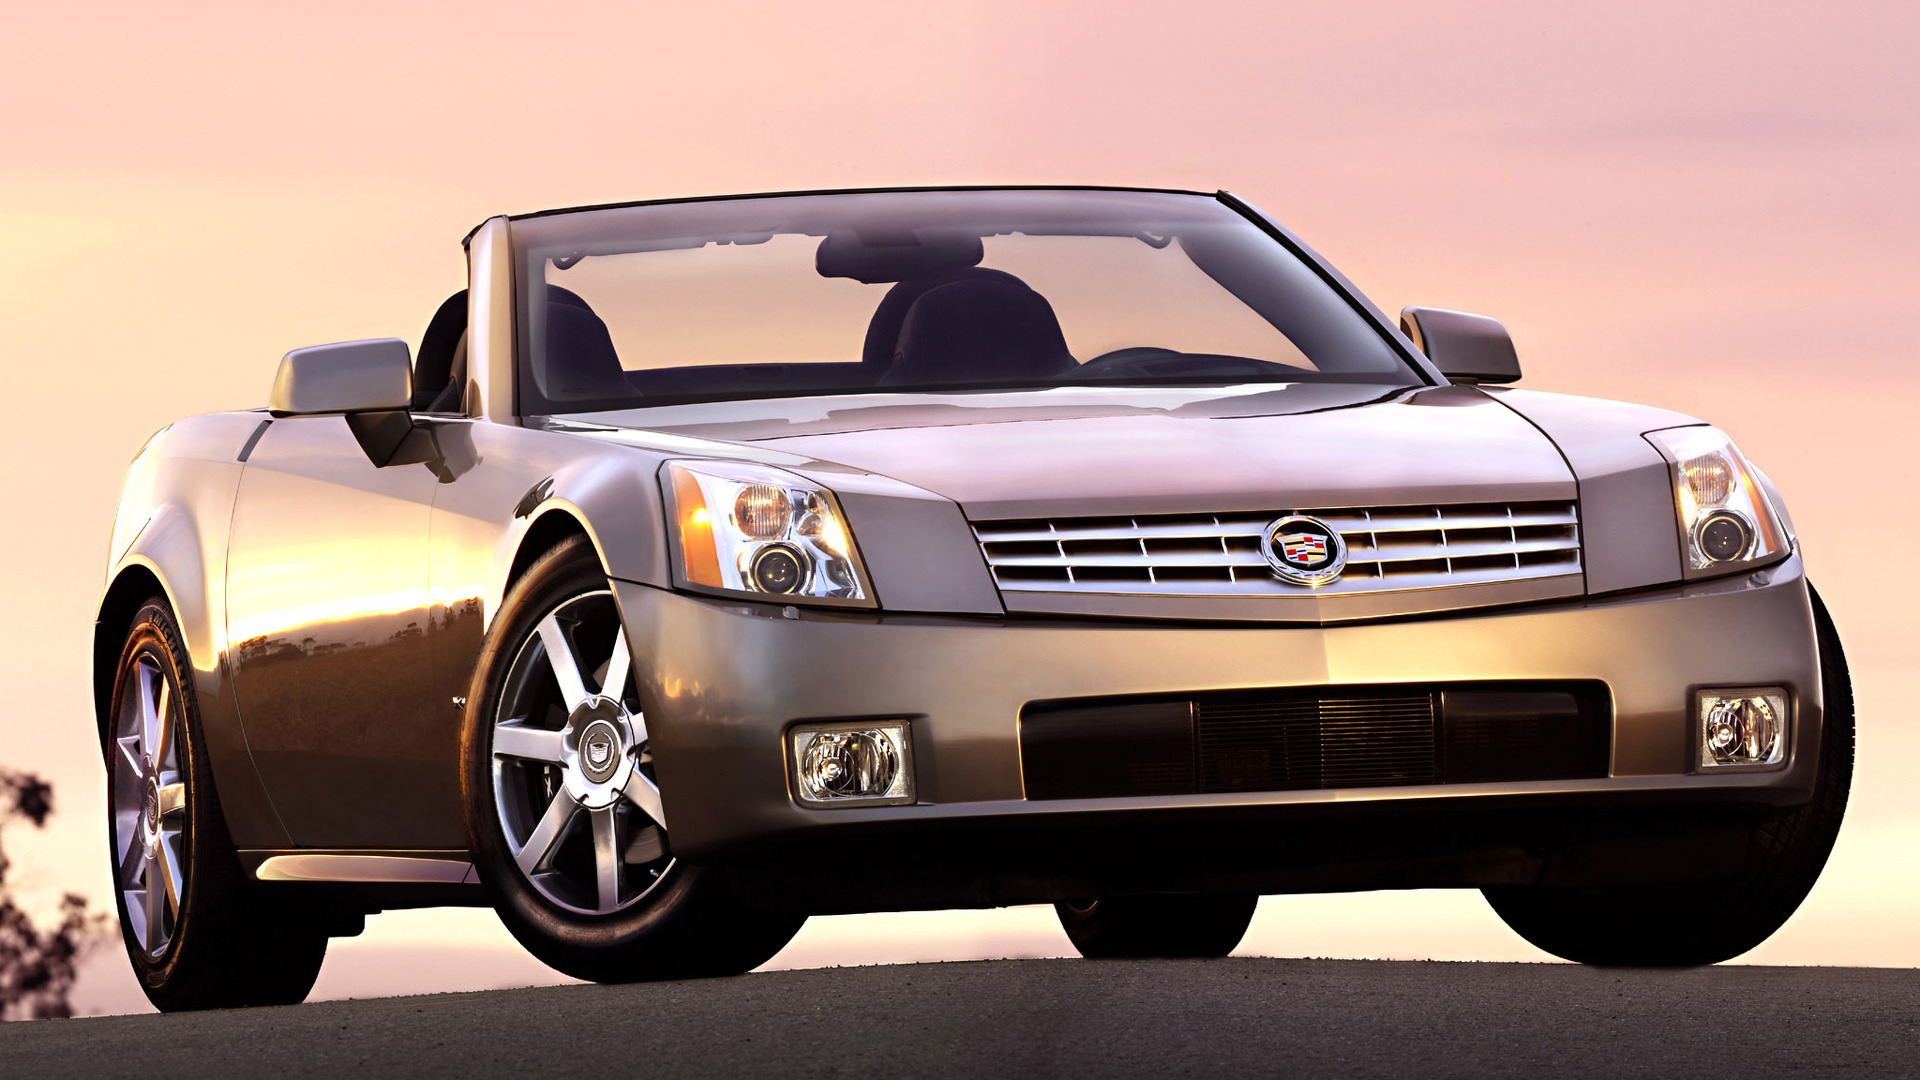 a to xlr cadillac very car appears comfortable the be overlooked performance